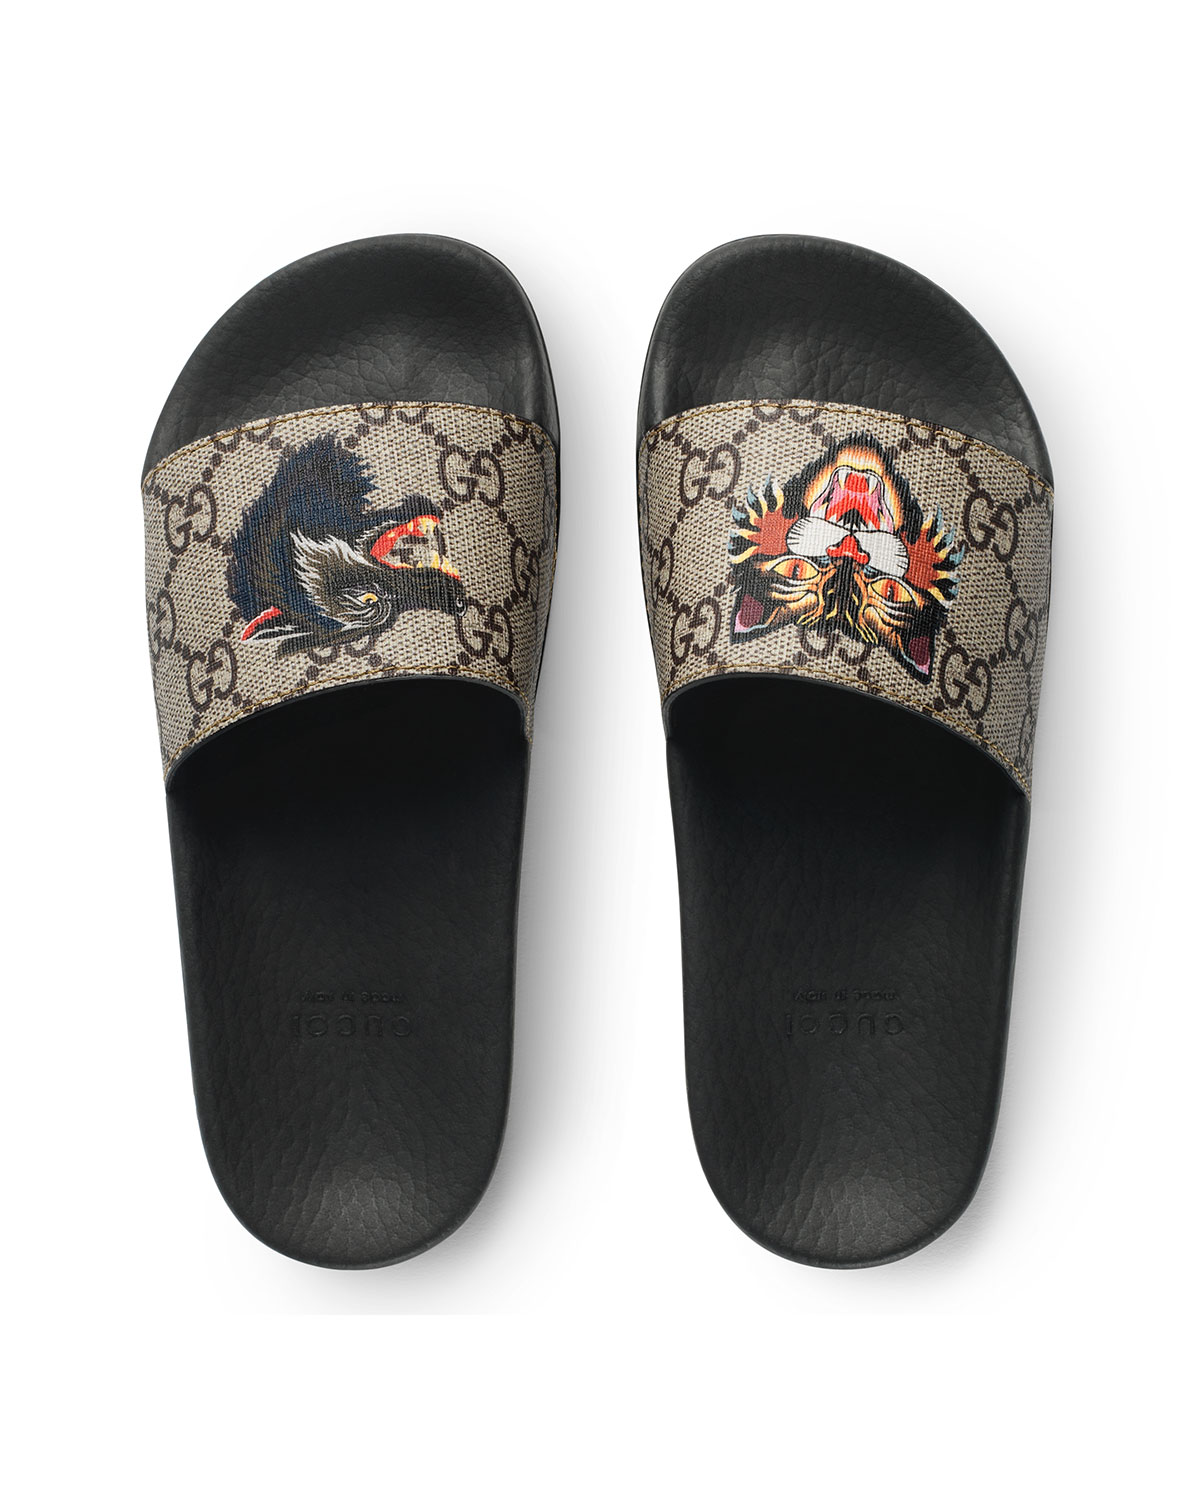 Pursuit Angry Cat \u0026 Wolf GG Supreme Canvas Slide Sandals, Toddler/Youth  Sizes 10T,2Y